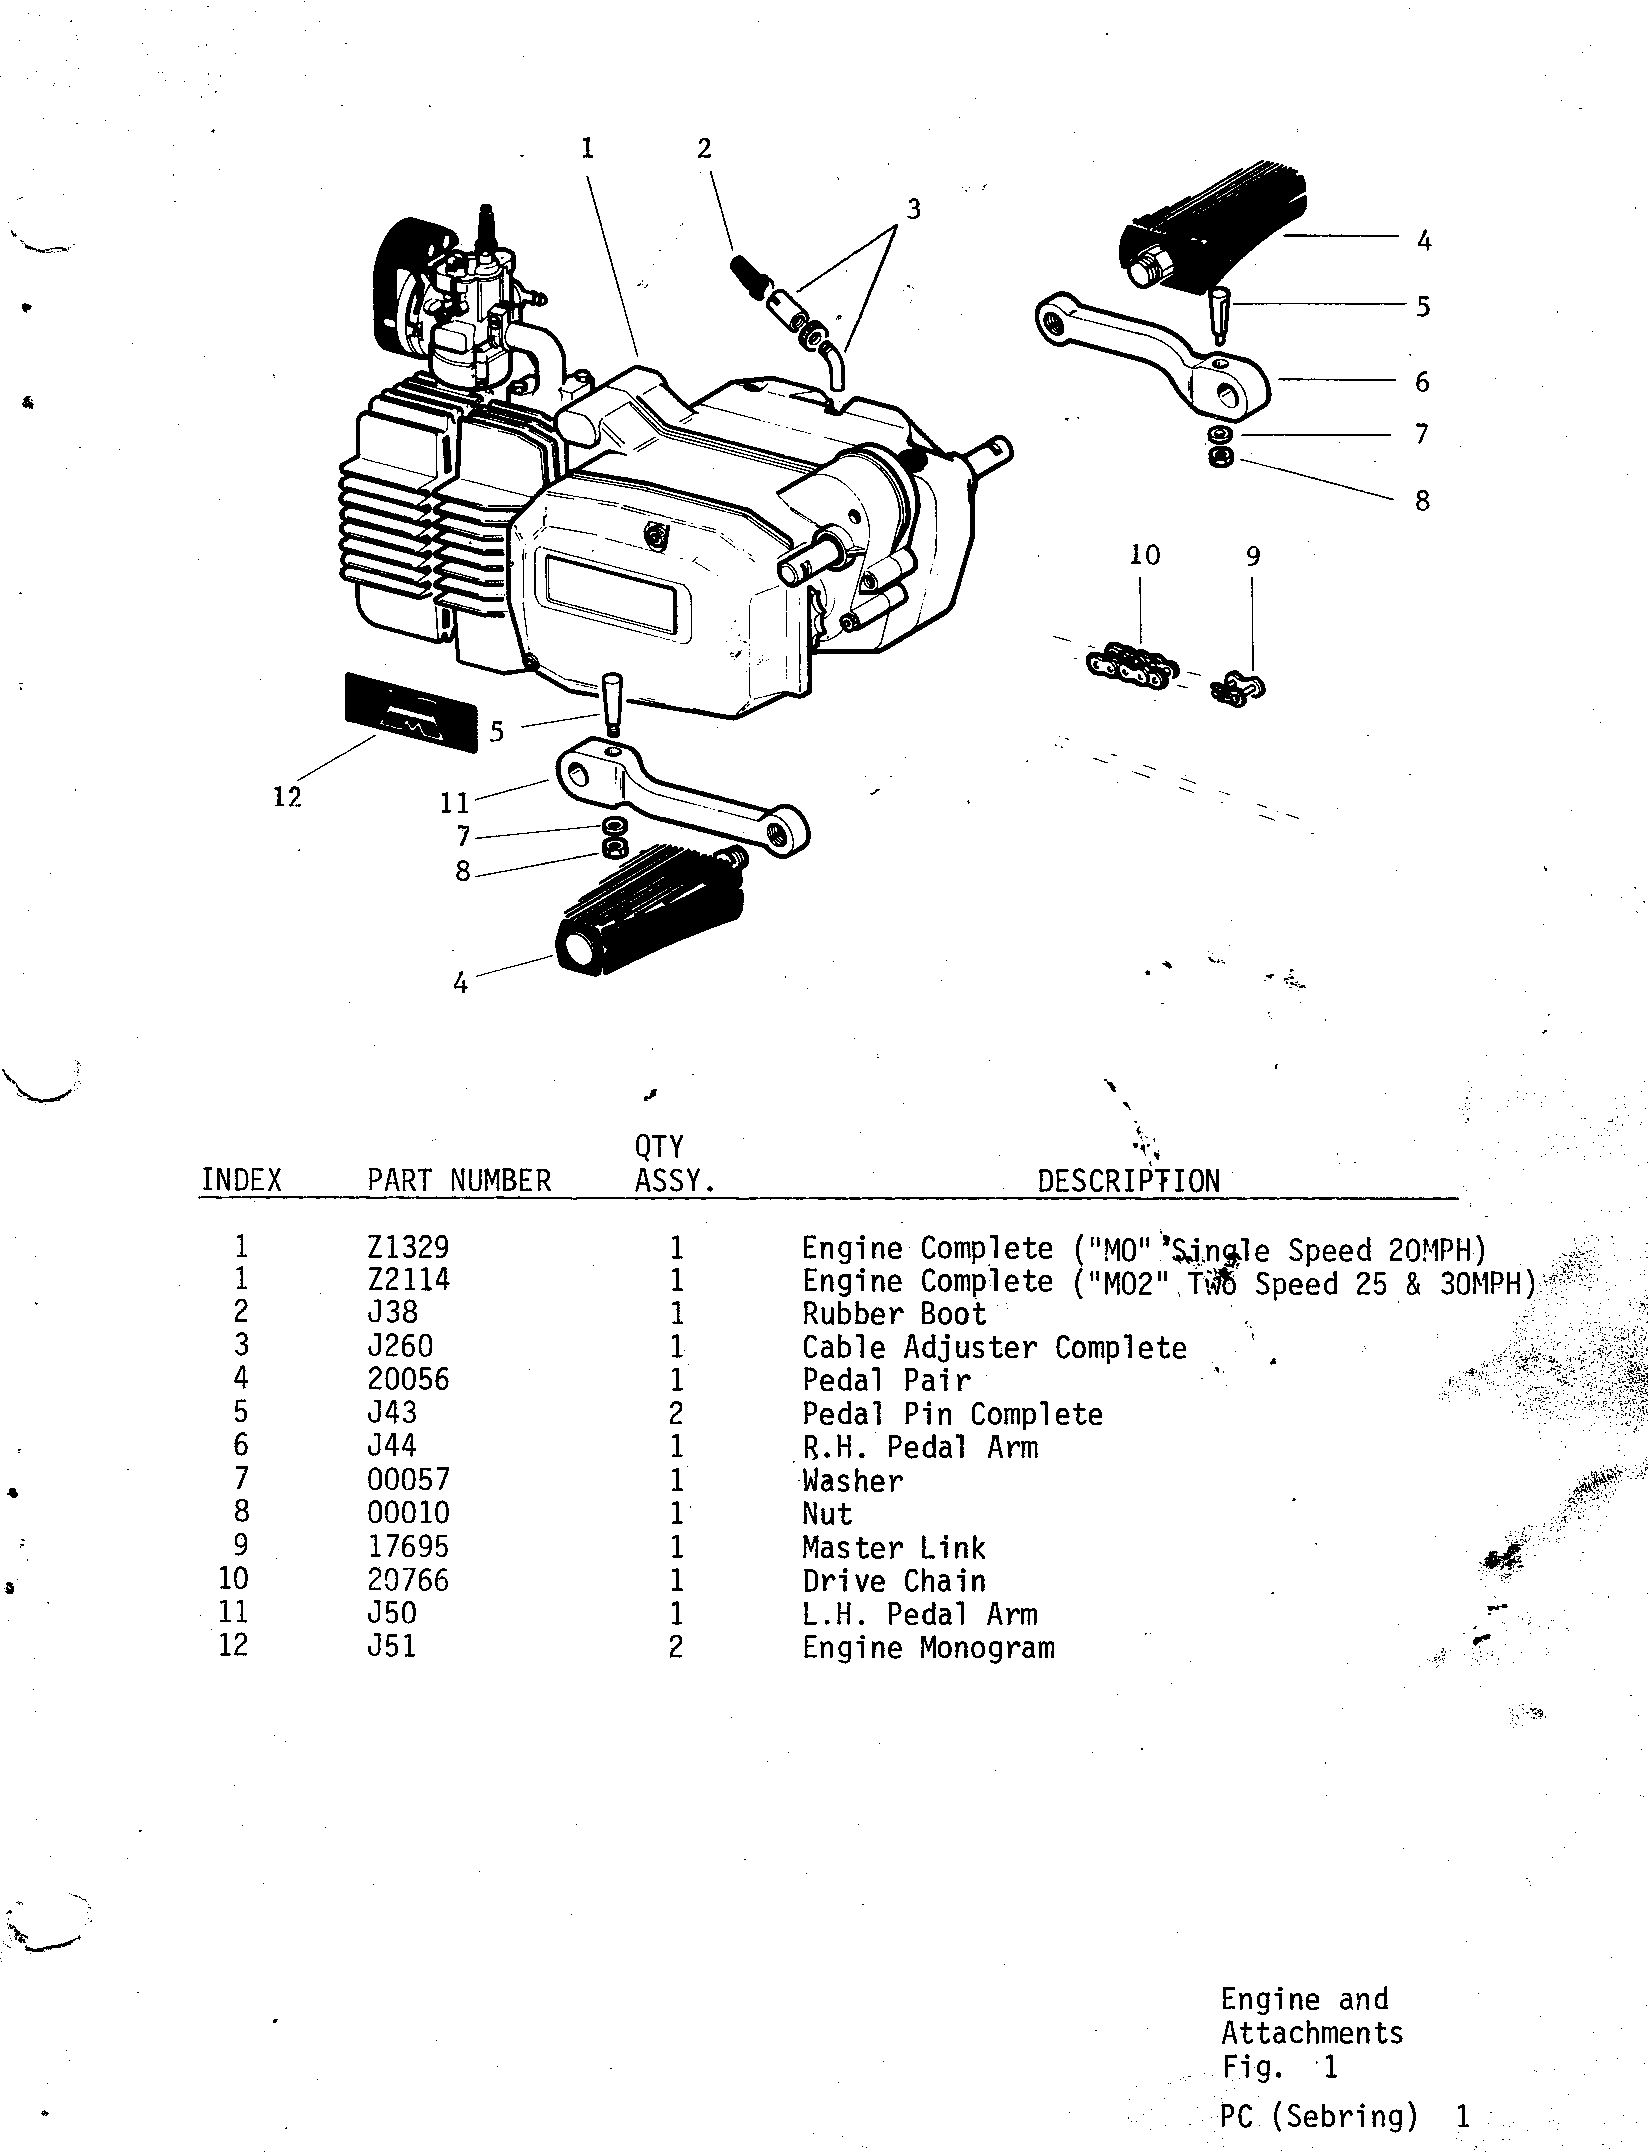 01-ENGINE AND ATTACHMENTS